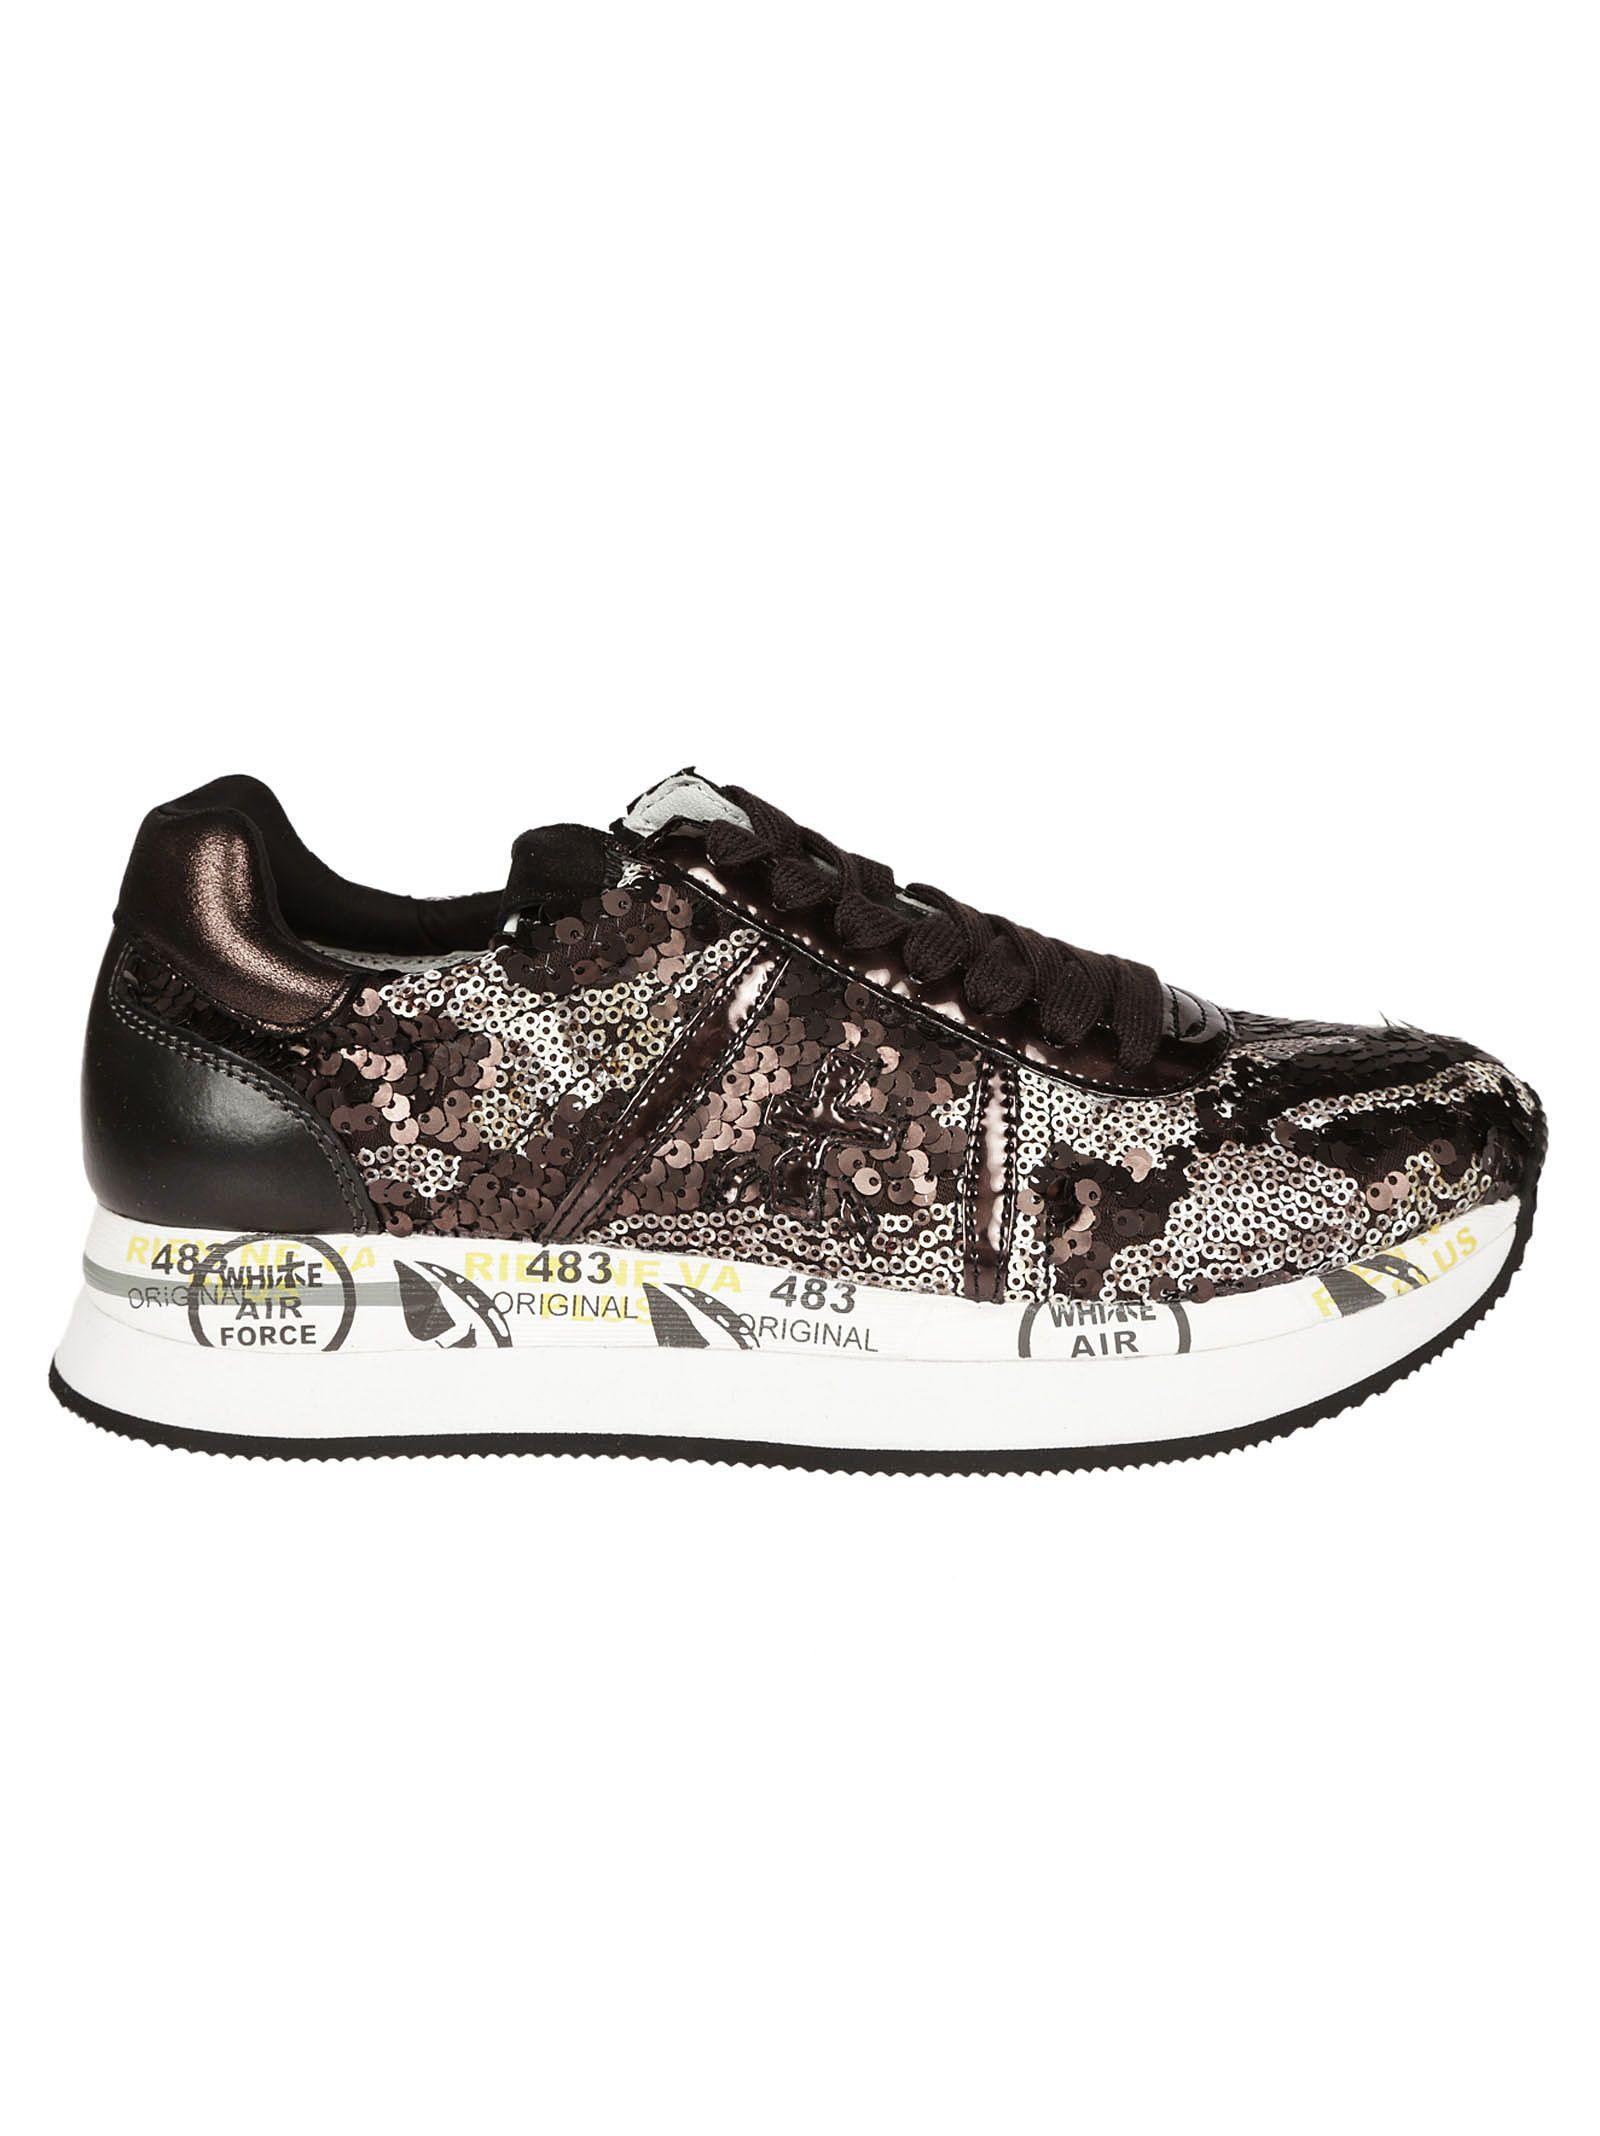 Premiata Conny Sequined Sneakers In Multicolor